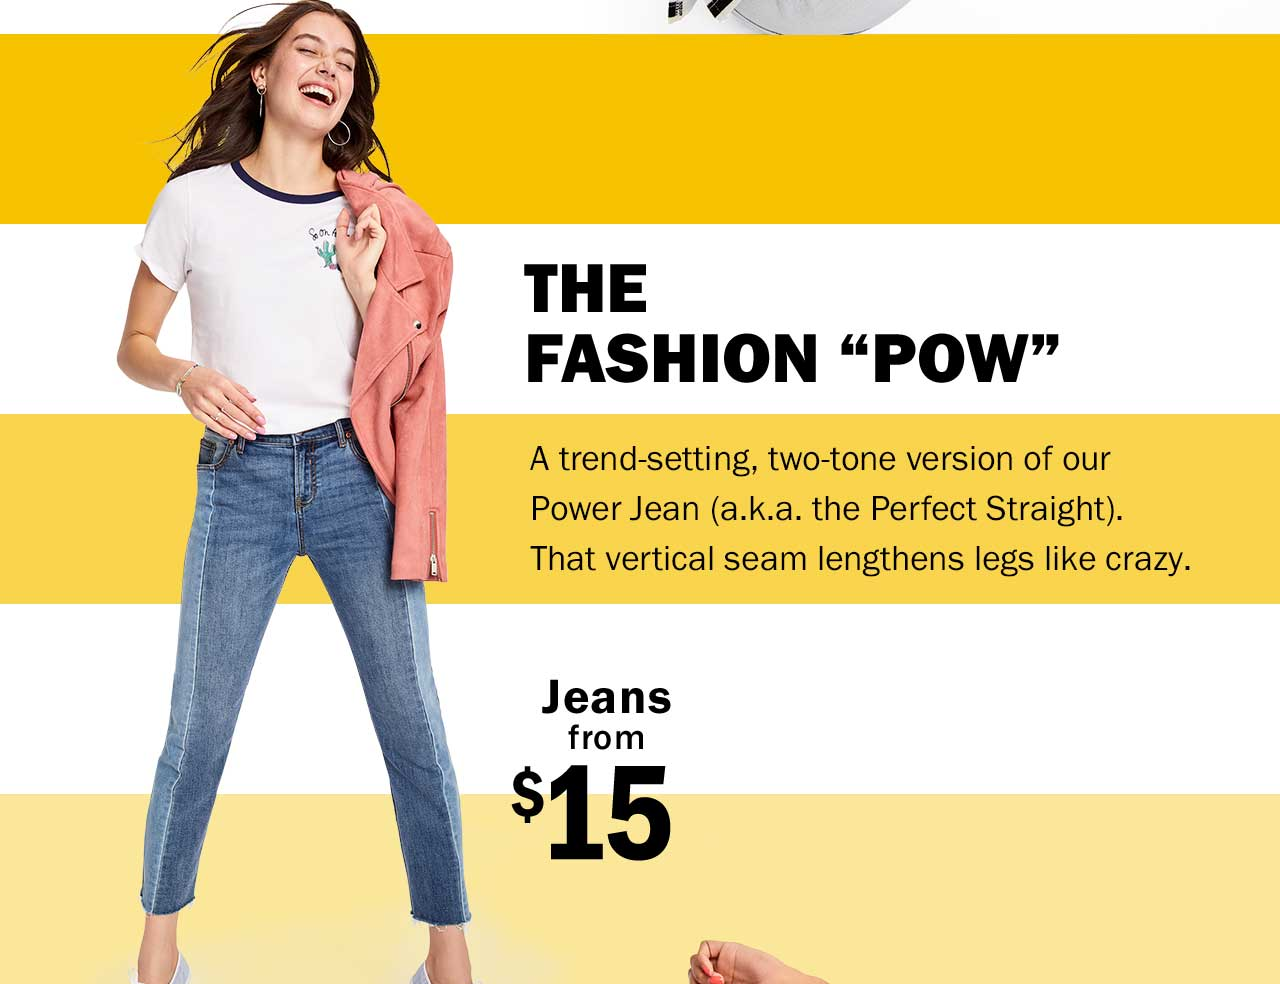 THE FASHION 'POW' | Jeans from $15